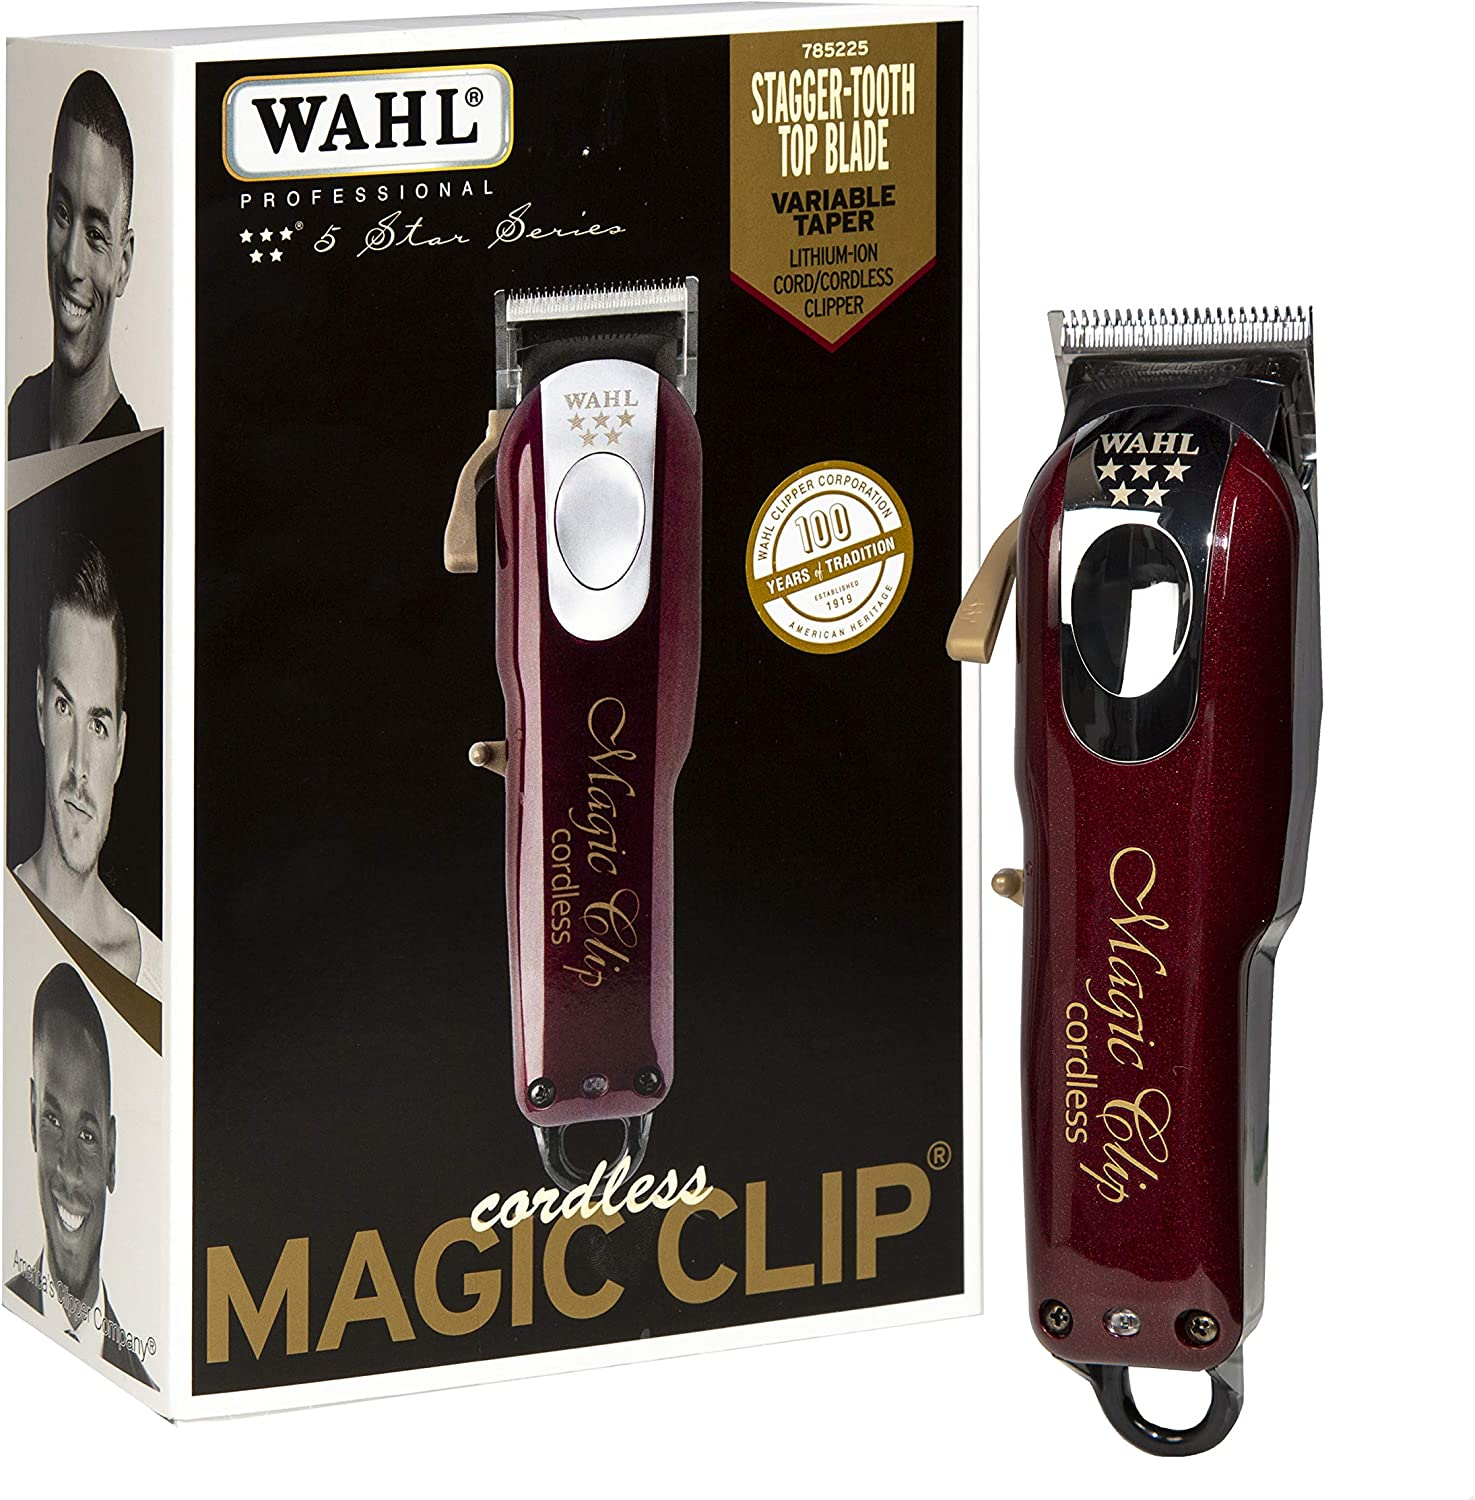 Wahl CORDLESS MAGIC CLIP - Afeitadora: Amazon.es: Hogar